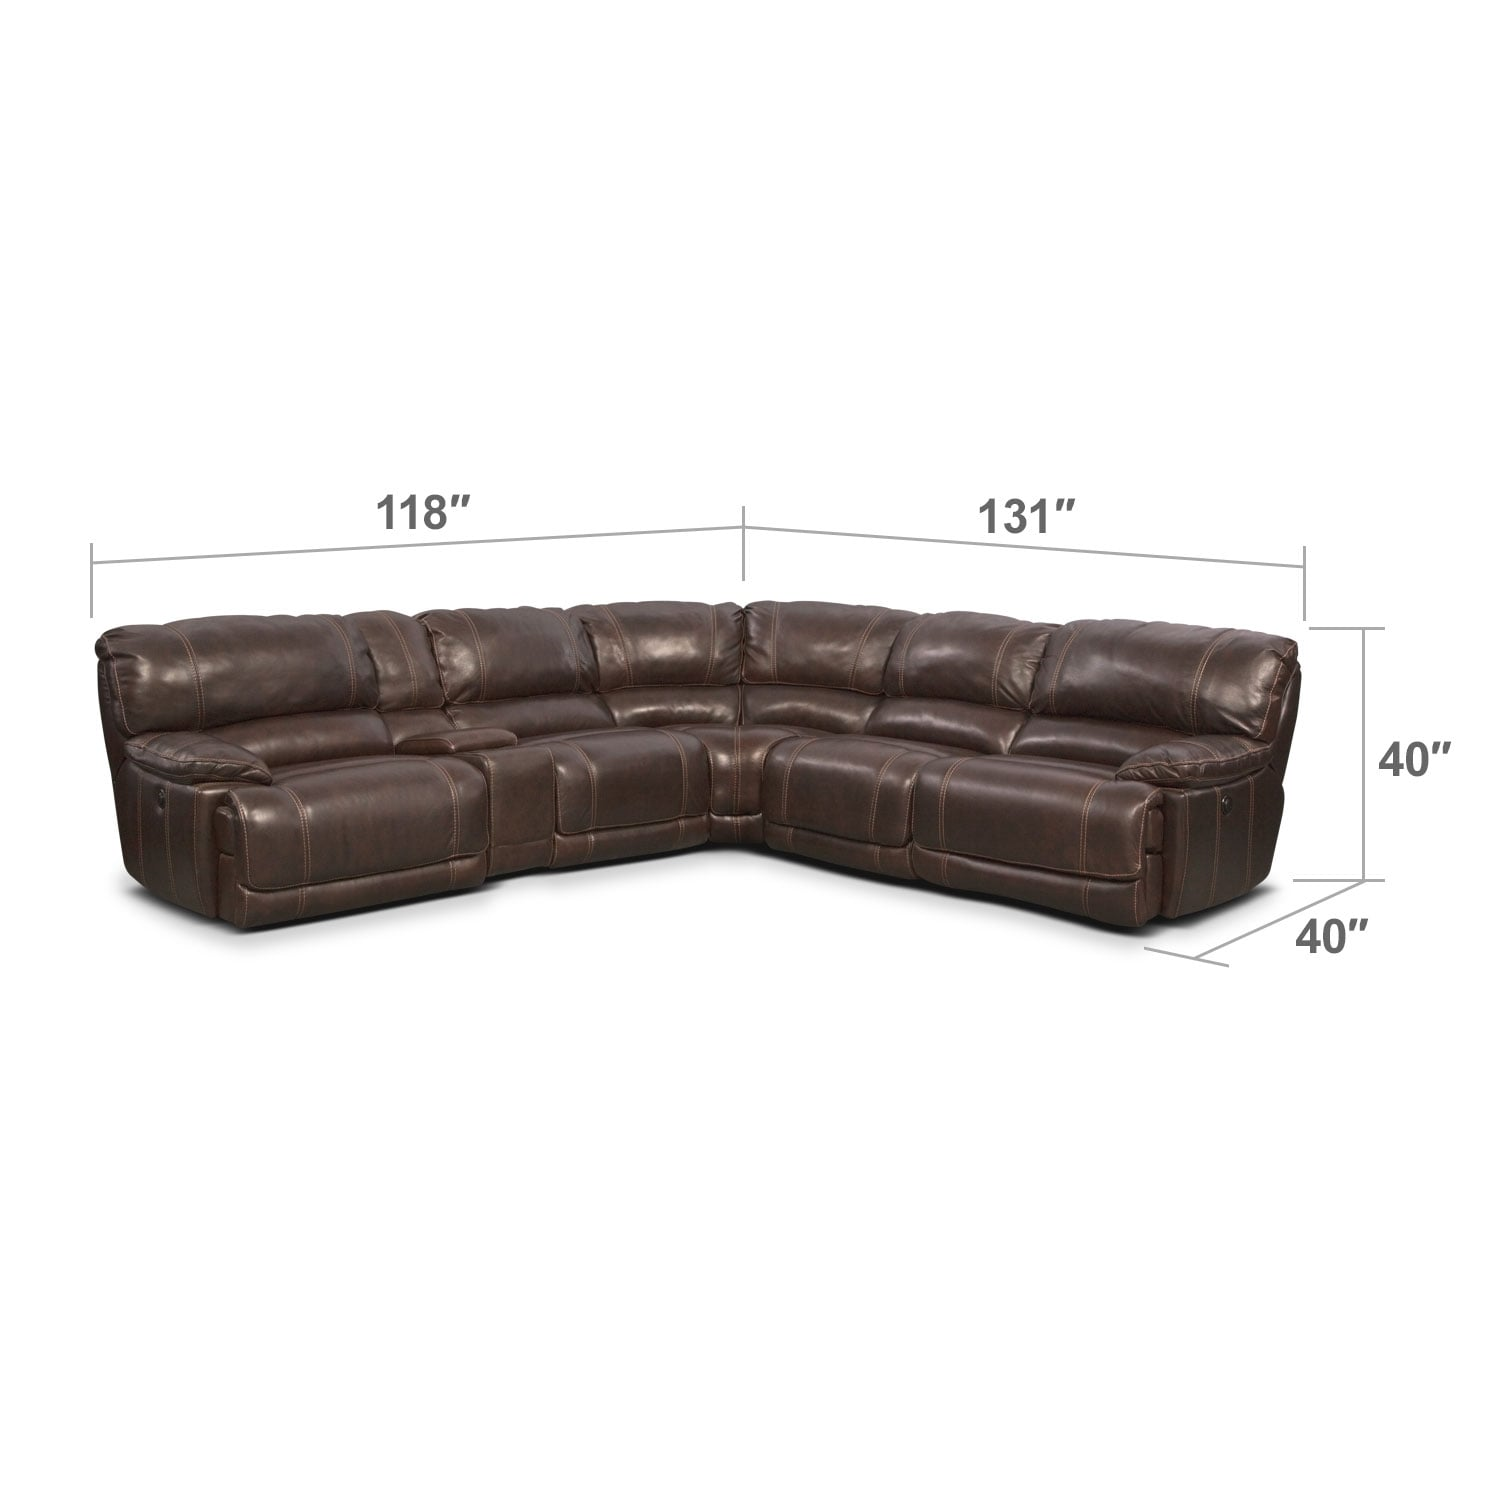 Living Room Furniture - Clinton Brown 6 Pc. Power Reclining Sectional (Alternate)